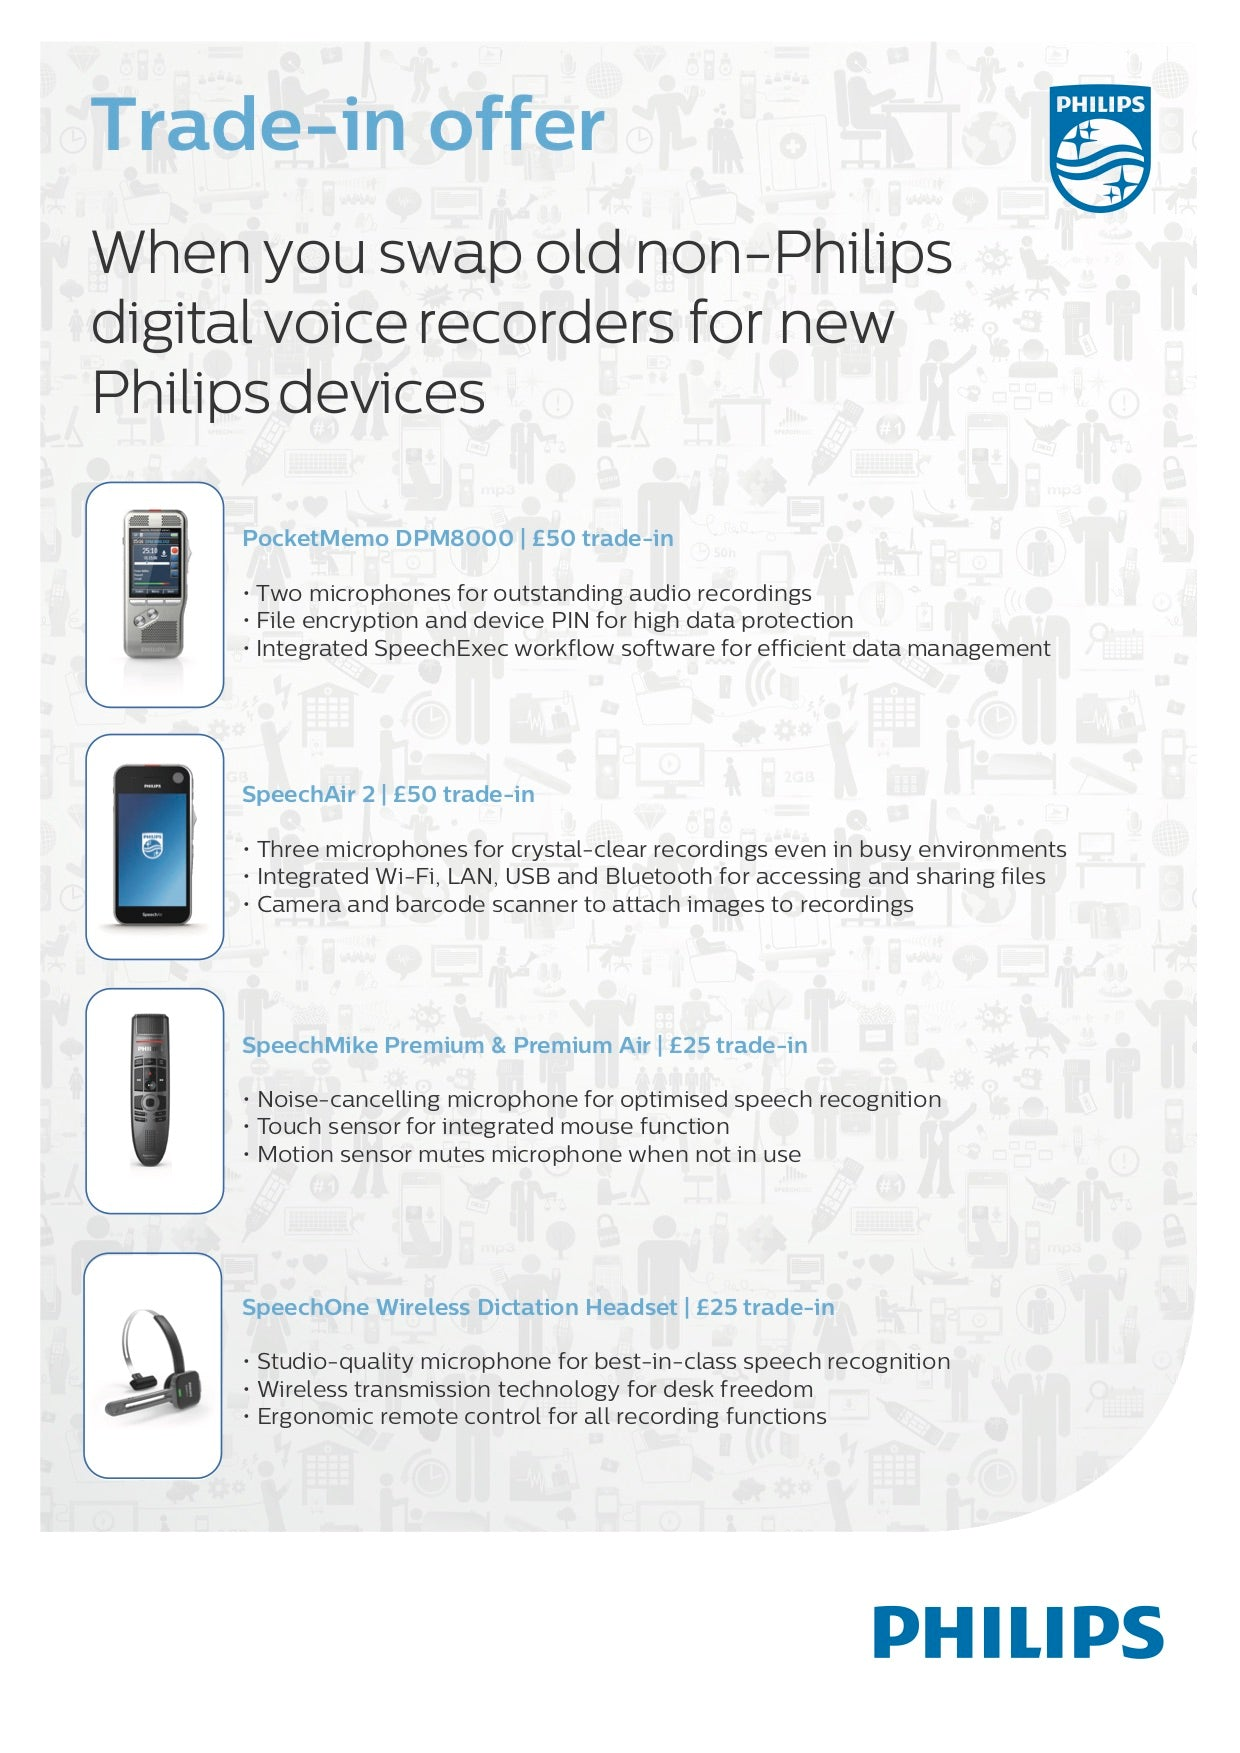 Trade-in deals available from SpeechProducts.co.uk on a select range of professional Philips devices